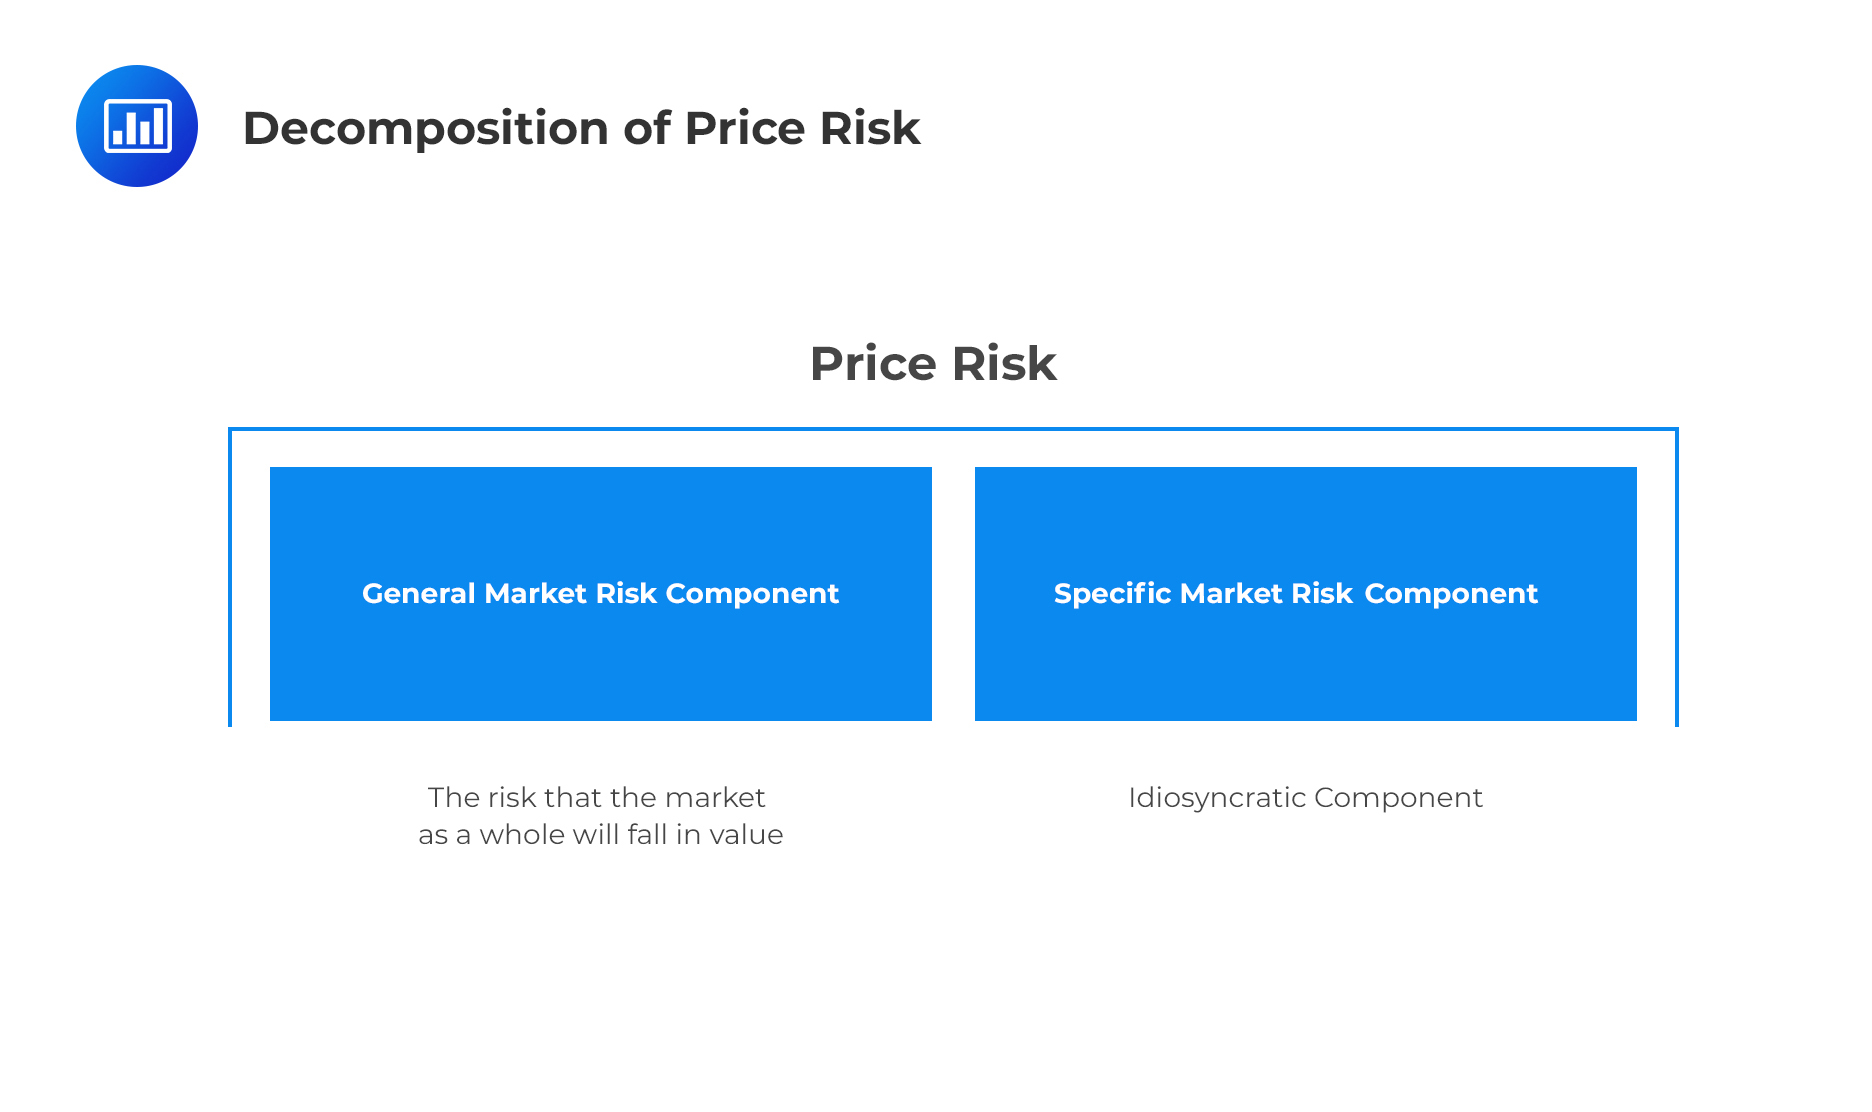 decomposition of price risk